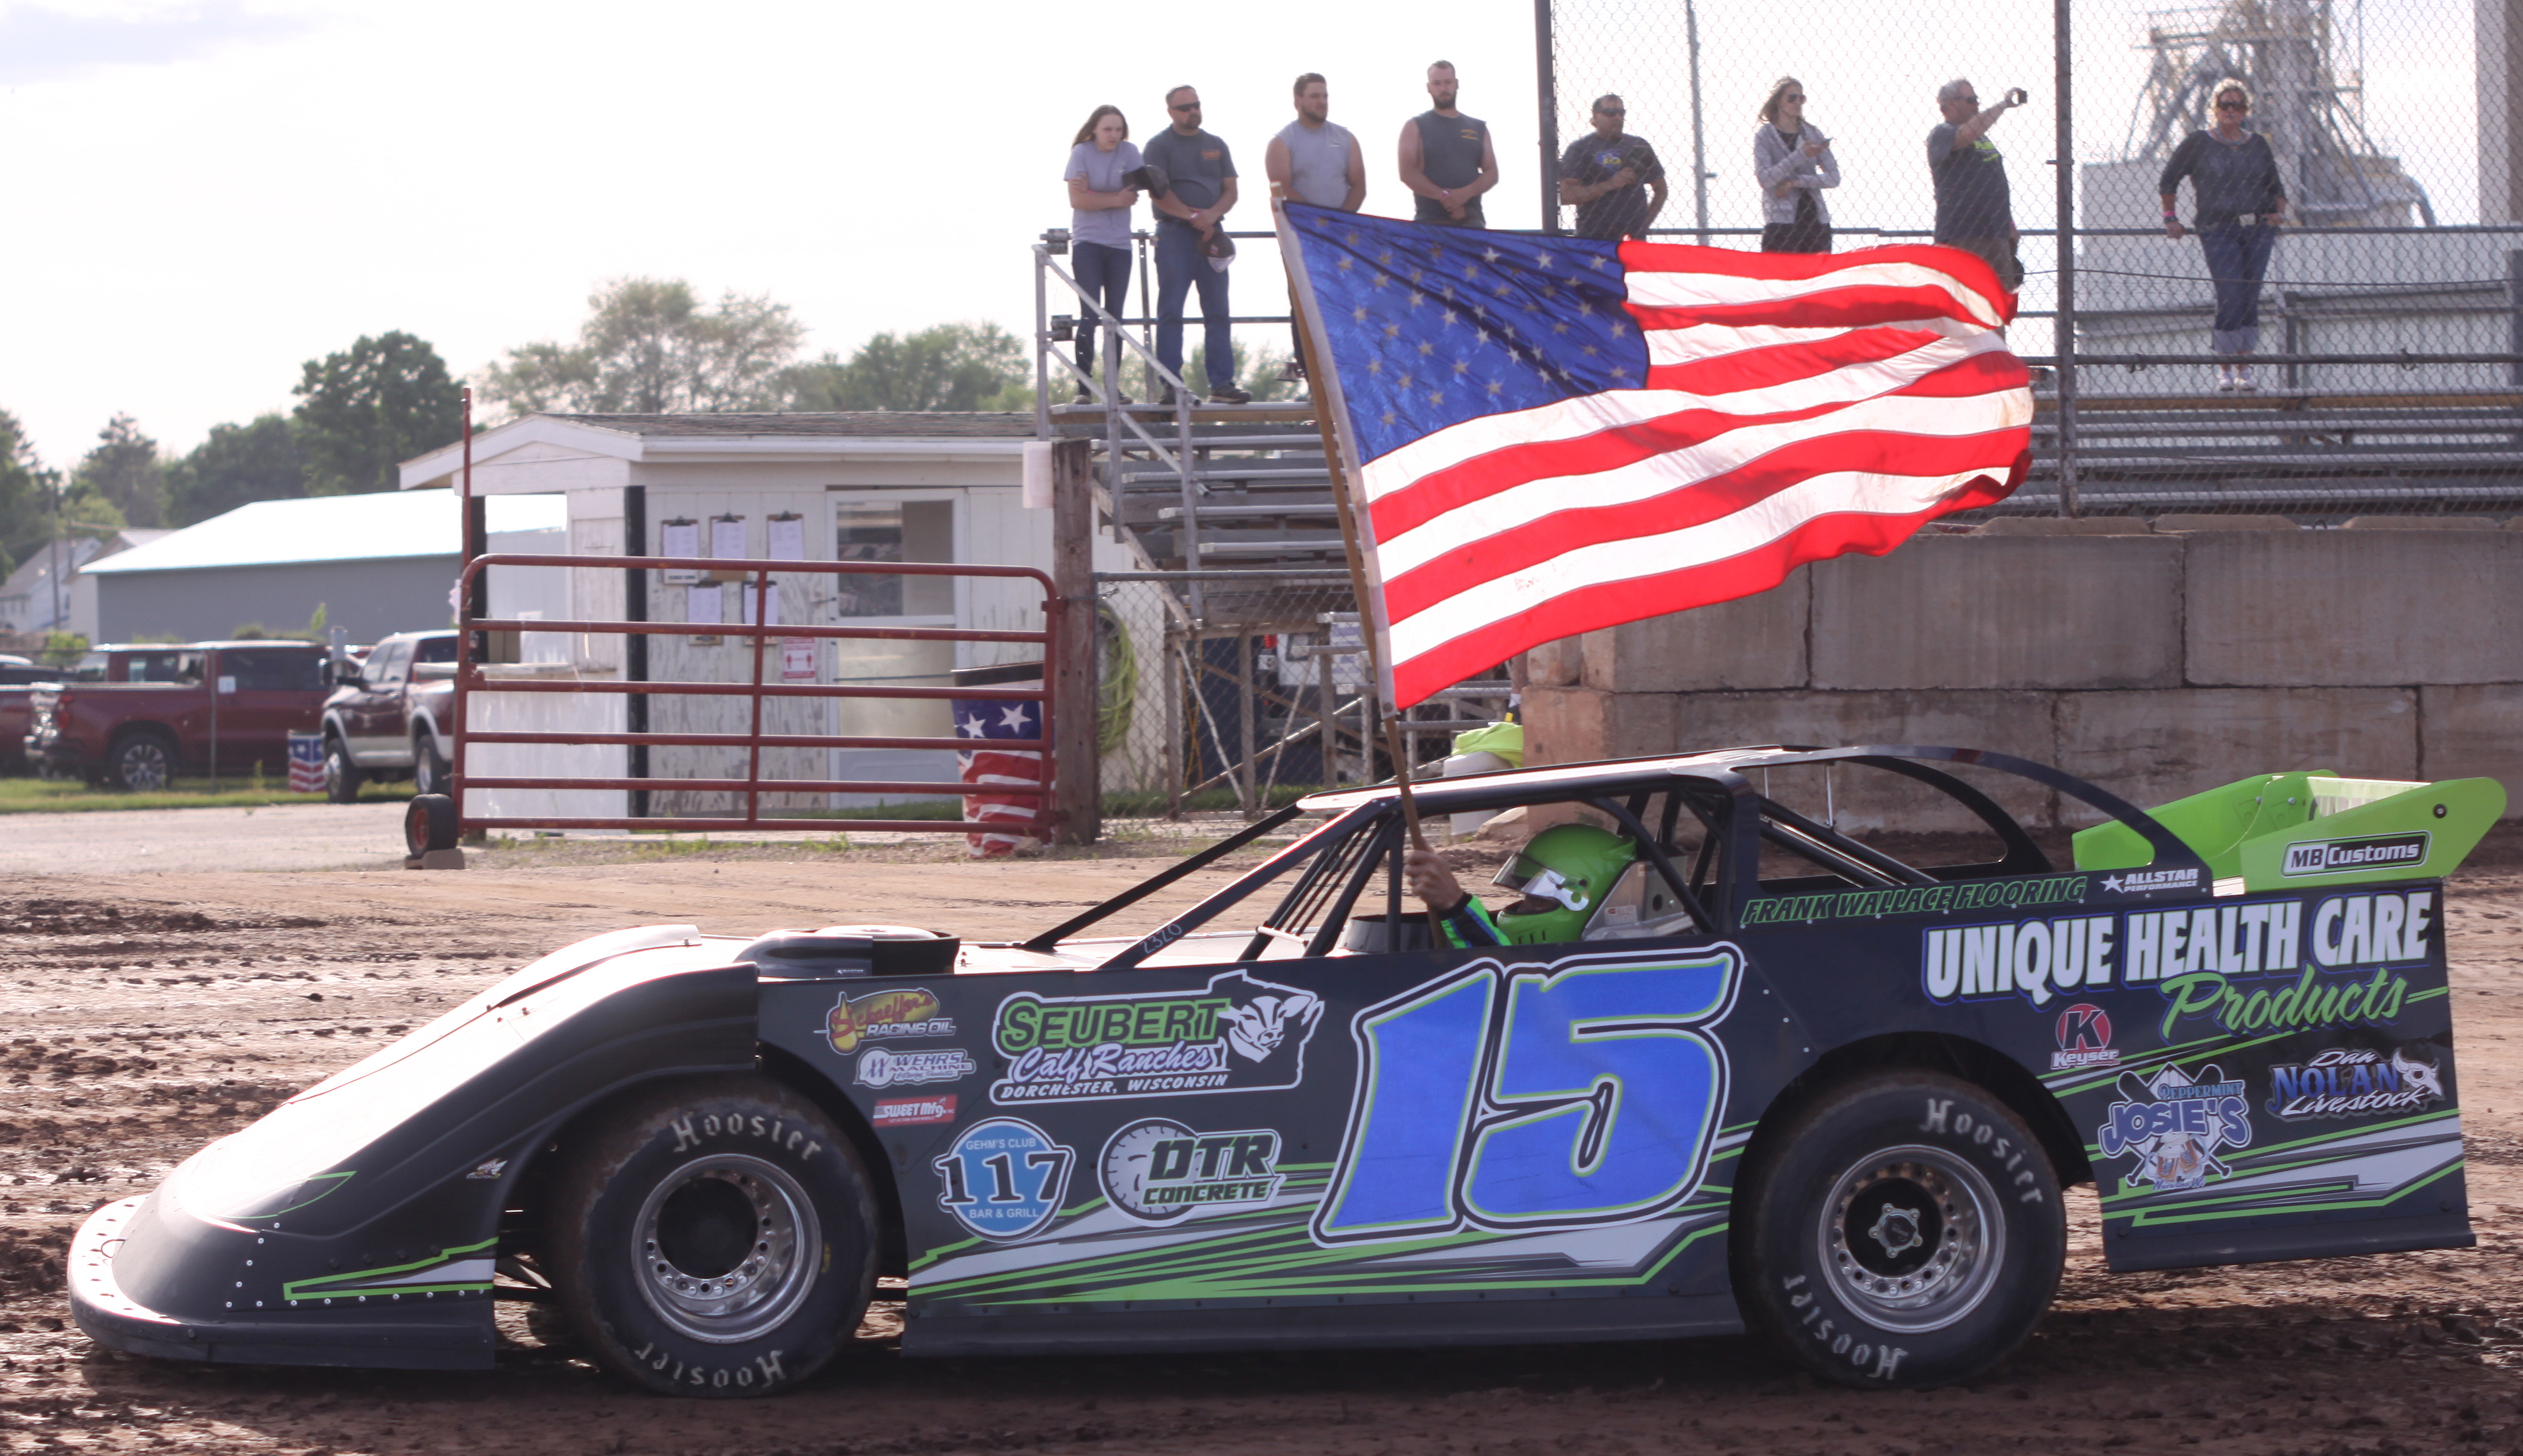 Nick Anvelink carries the U.S. flag as he drives around the track during the Shawano Speedway&#039;s season opener on Saturday. Drivers who won a 2019 title received the honor, with Anvelink having won the Late Model class last summer.<br />Morgan Rode | NEW Media